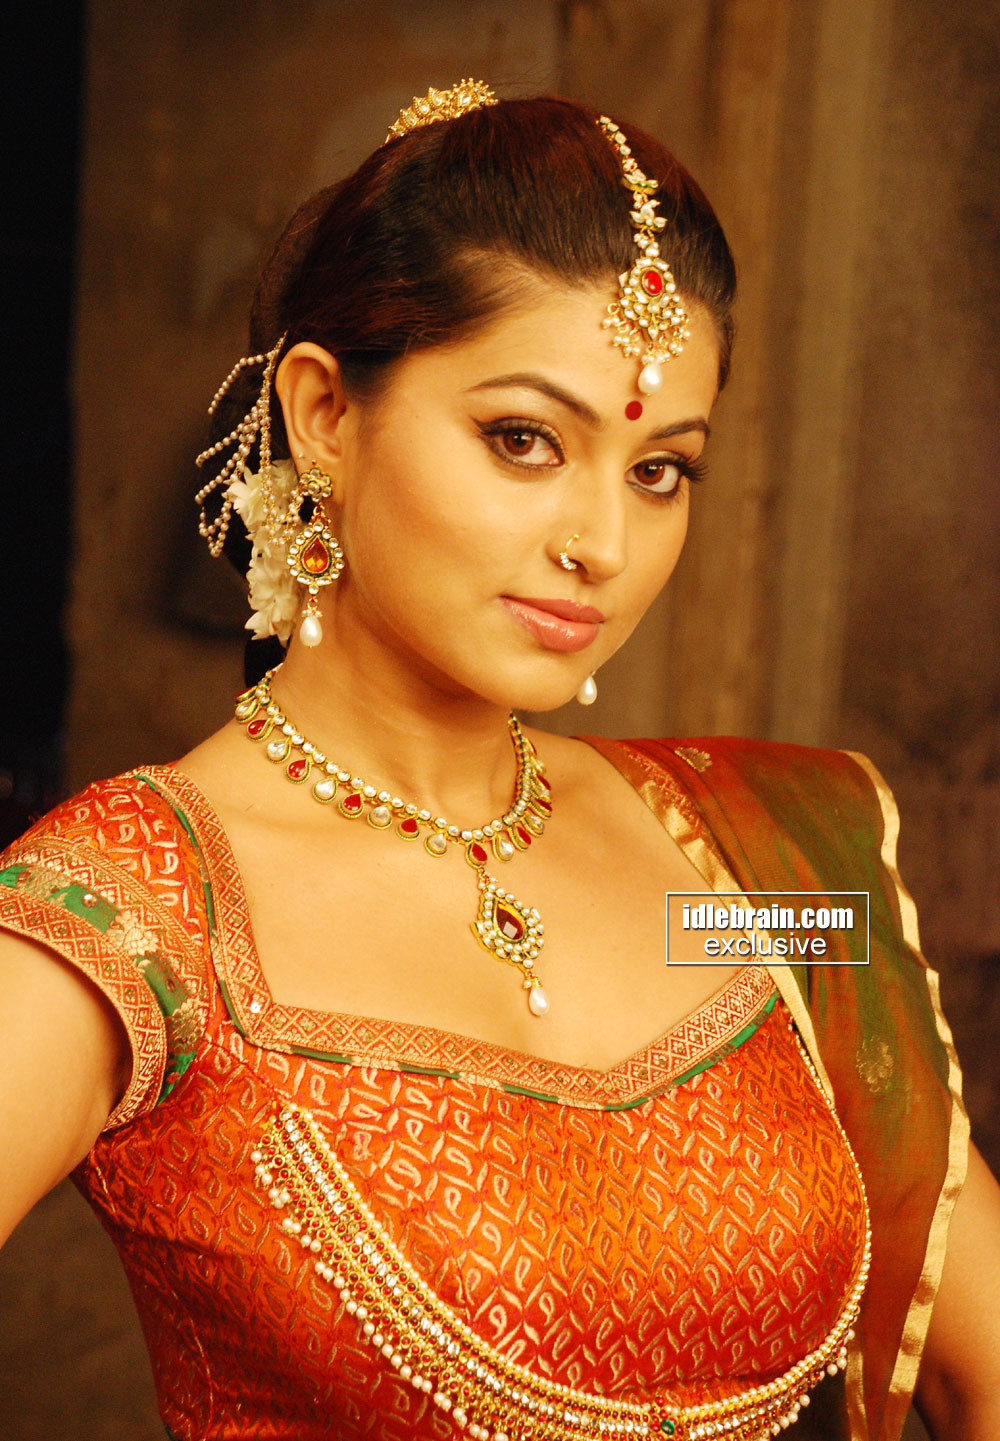 Tamil Actress Sneha Hot Navel Show In Saree  Mallufuncom-3815